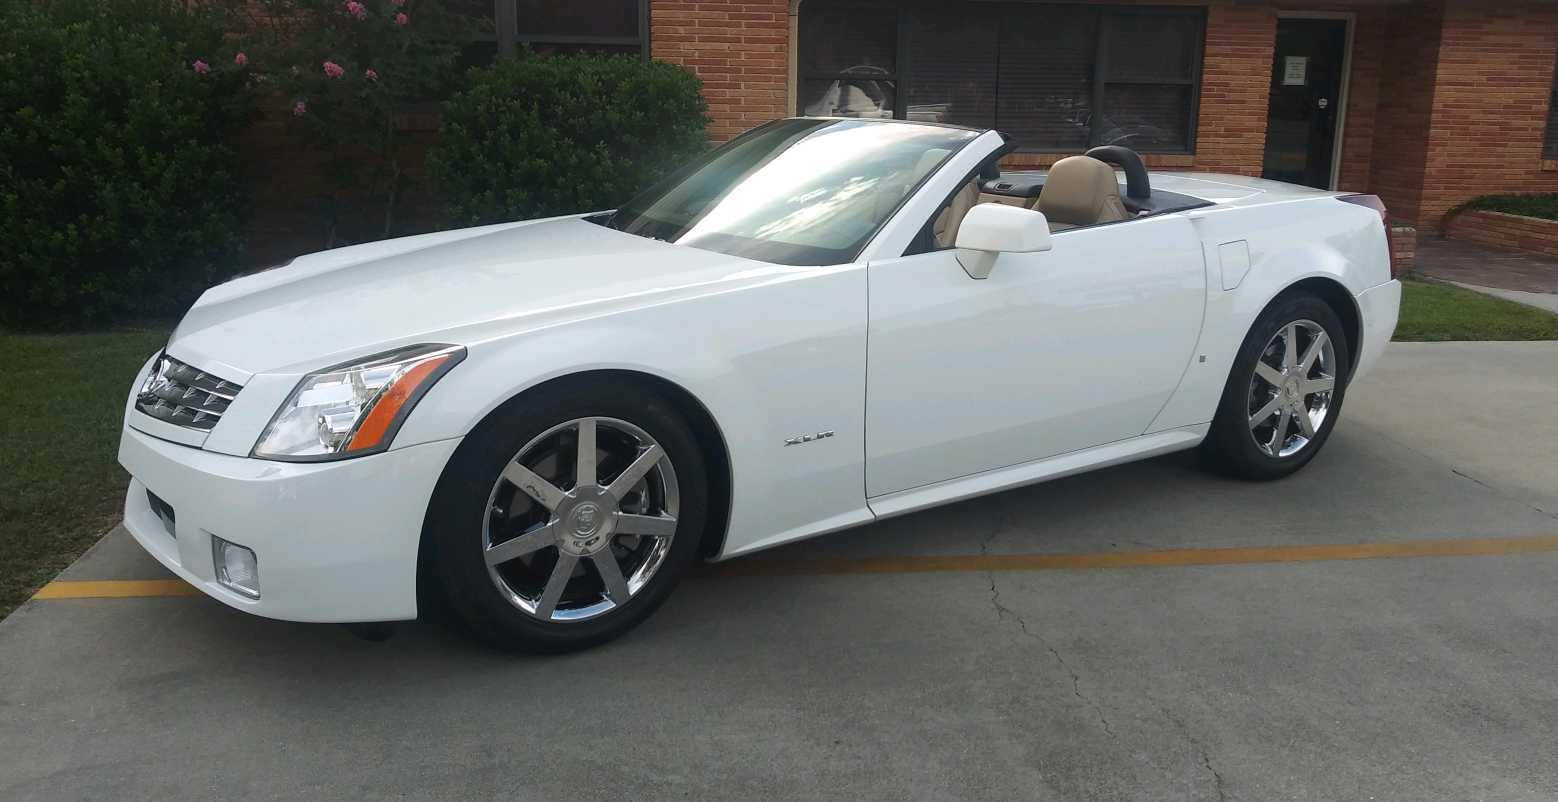 3rd Image of a 2008 CADILLAC XLR ROADSTER